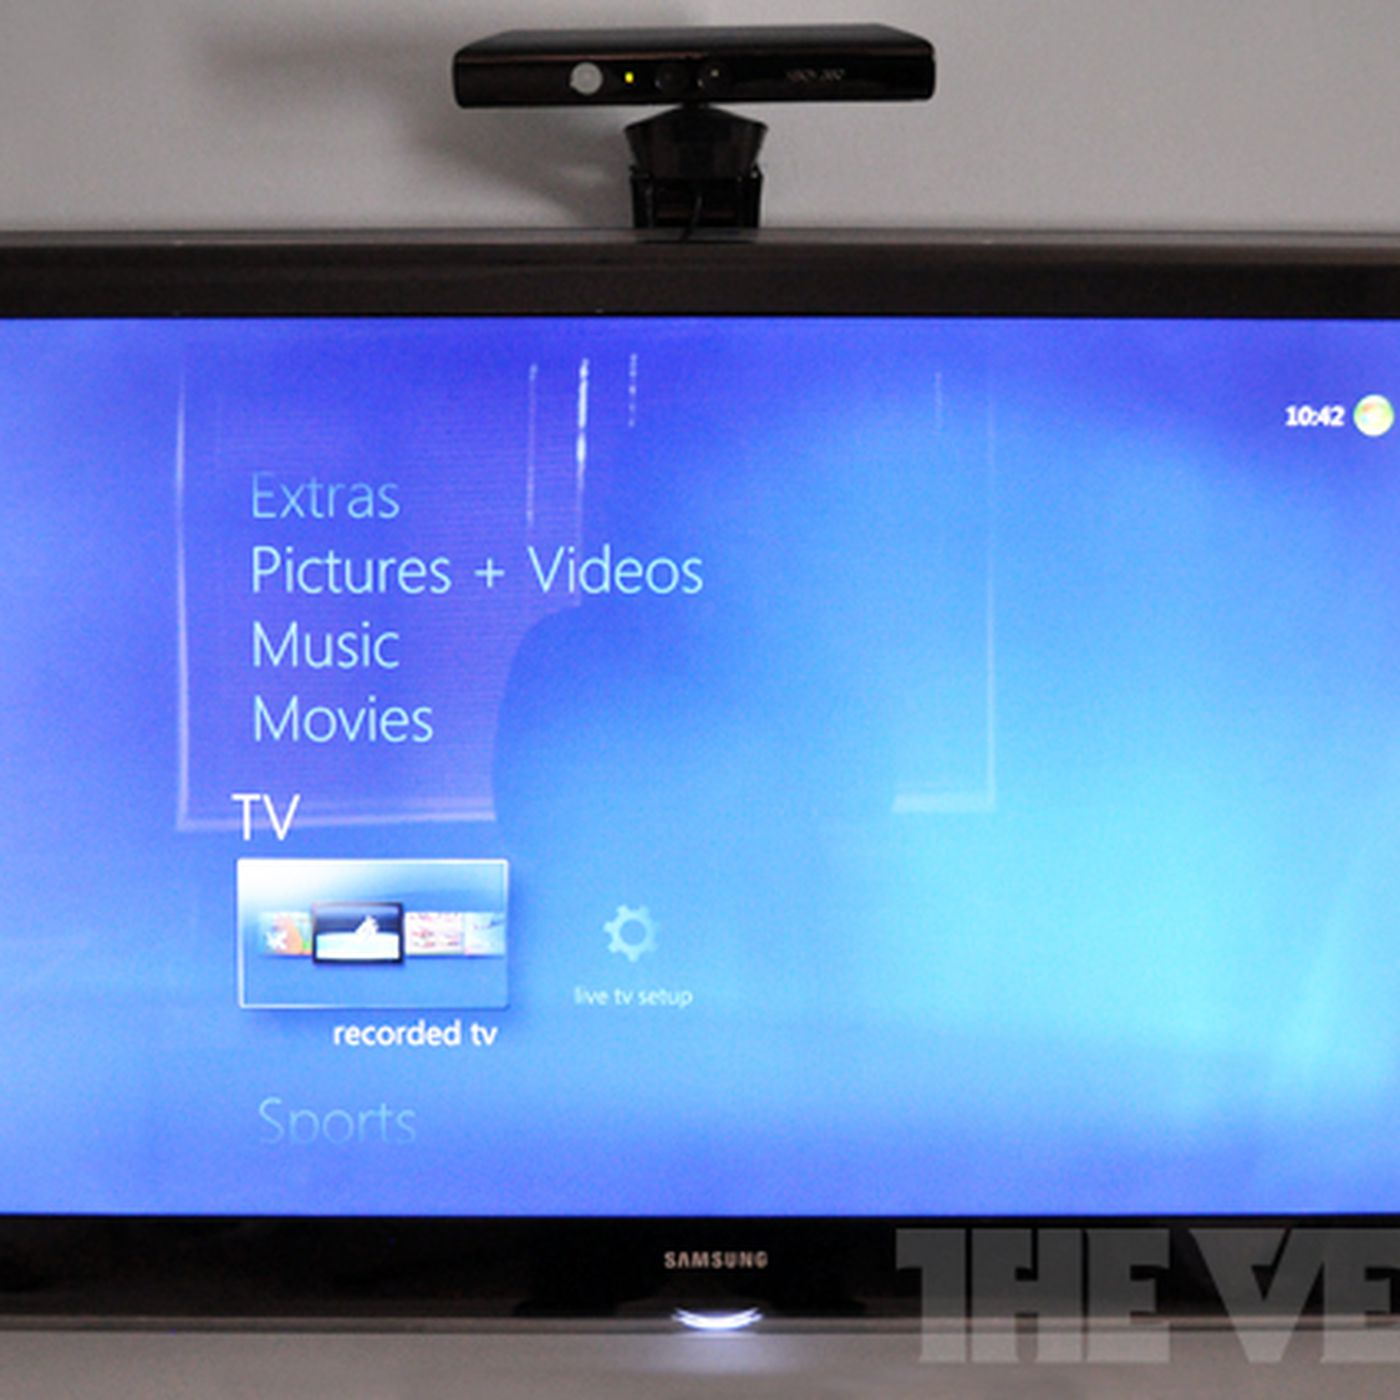 Kinect for Windows Media Center app adds gesture and voice